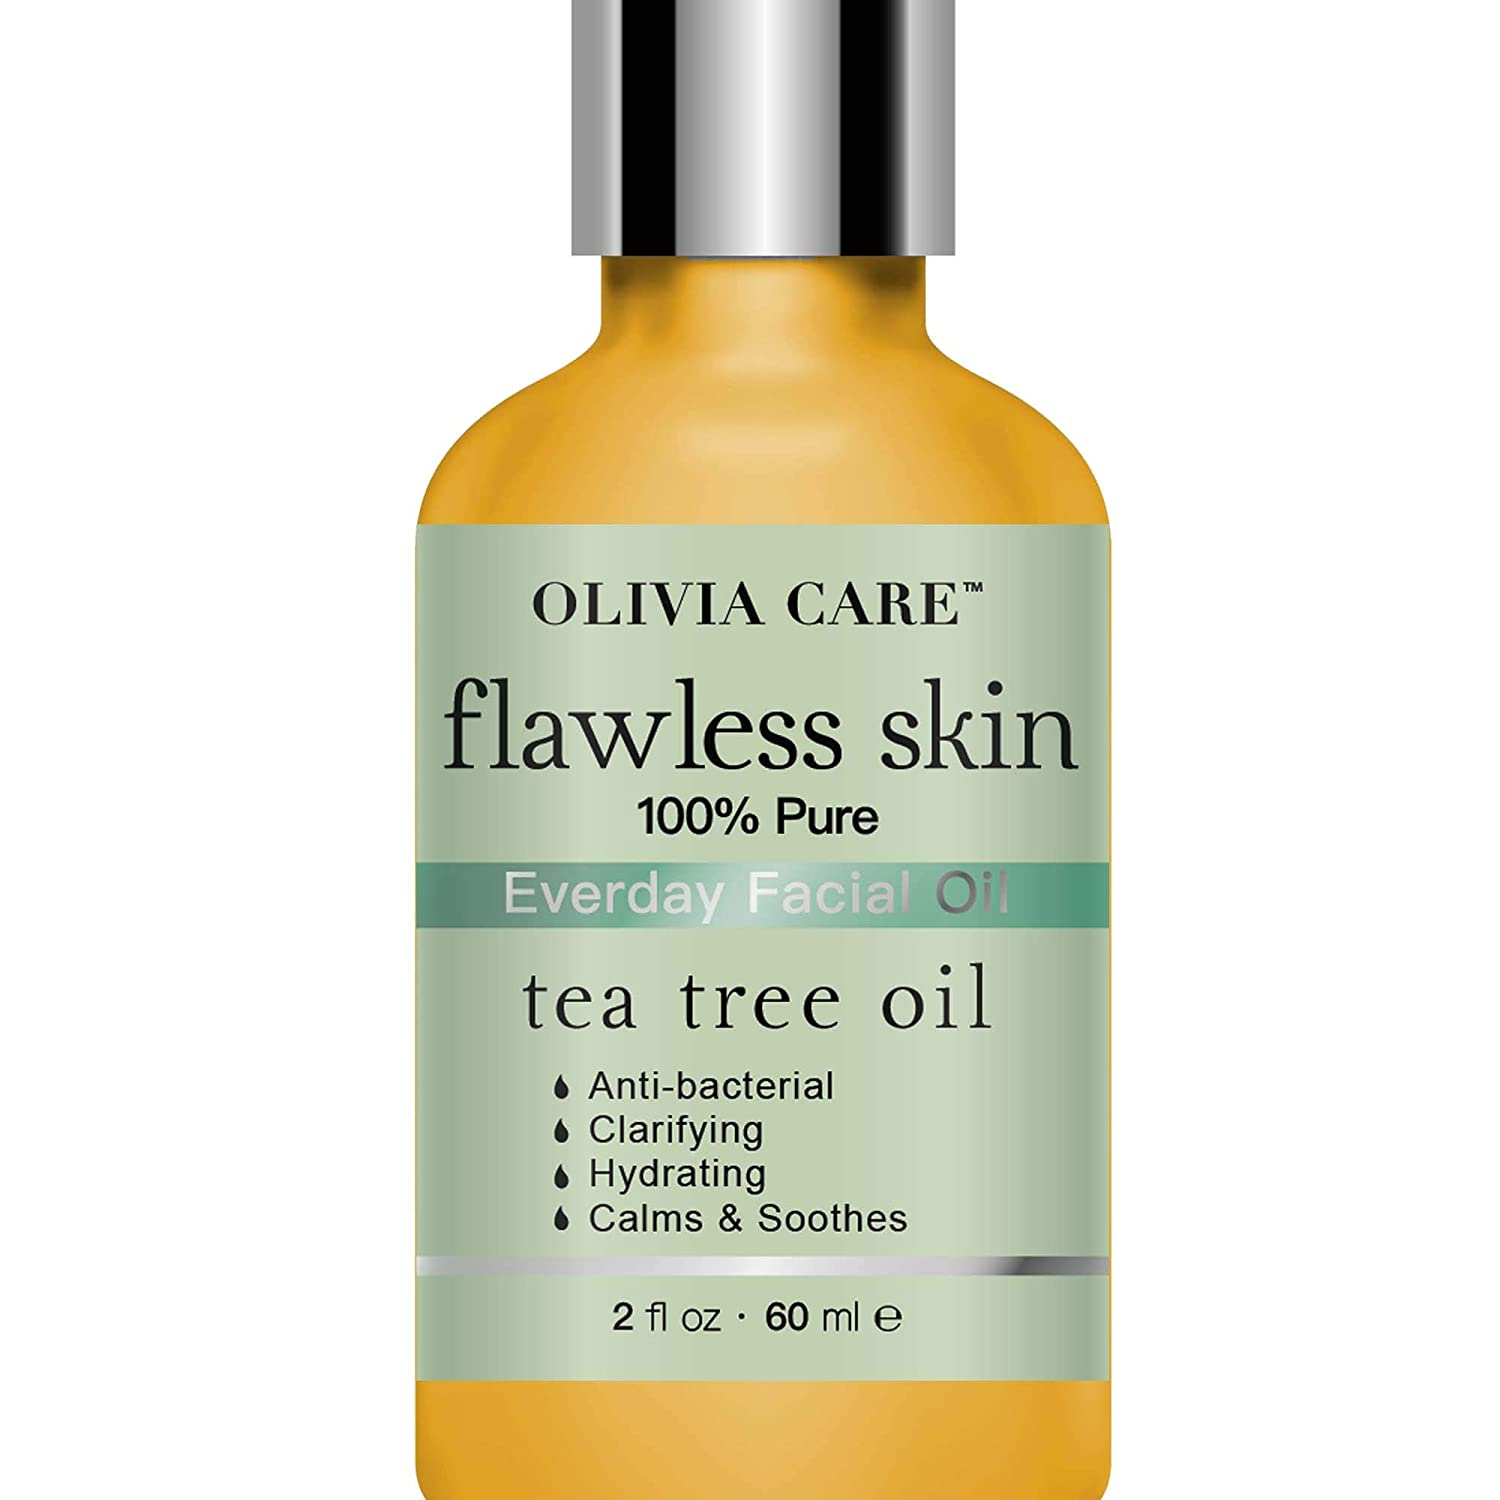 Tea Tree Pure Flawless Essential Facial Oil By Olivia Care – 100% Natural. Moisturizing, Hydrating, Calming & Soothing. Deep Cleans & Soothes Skin. Remove Dirt, Scars & Impurities - 2 OZ